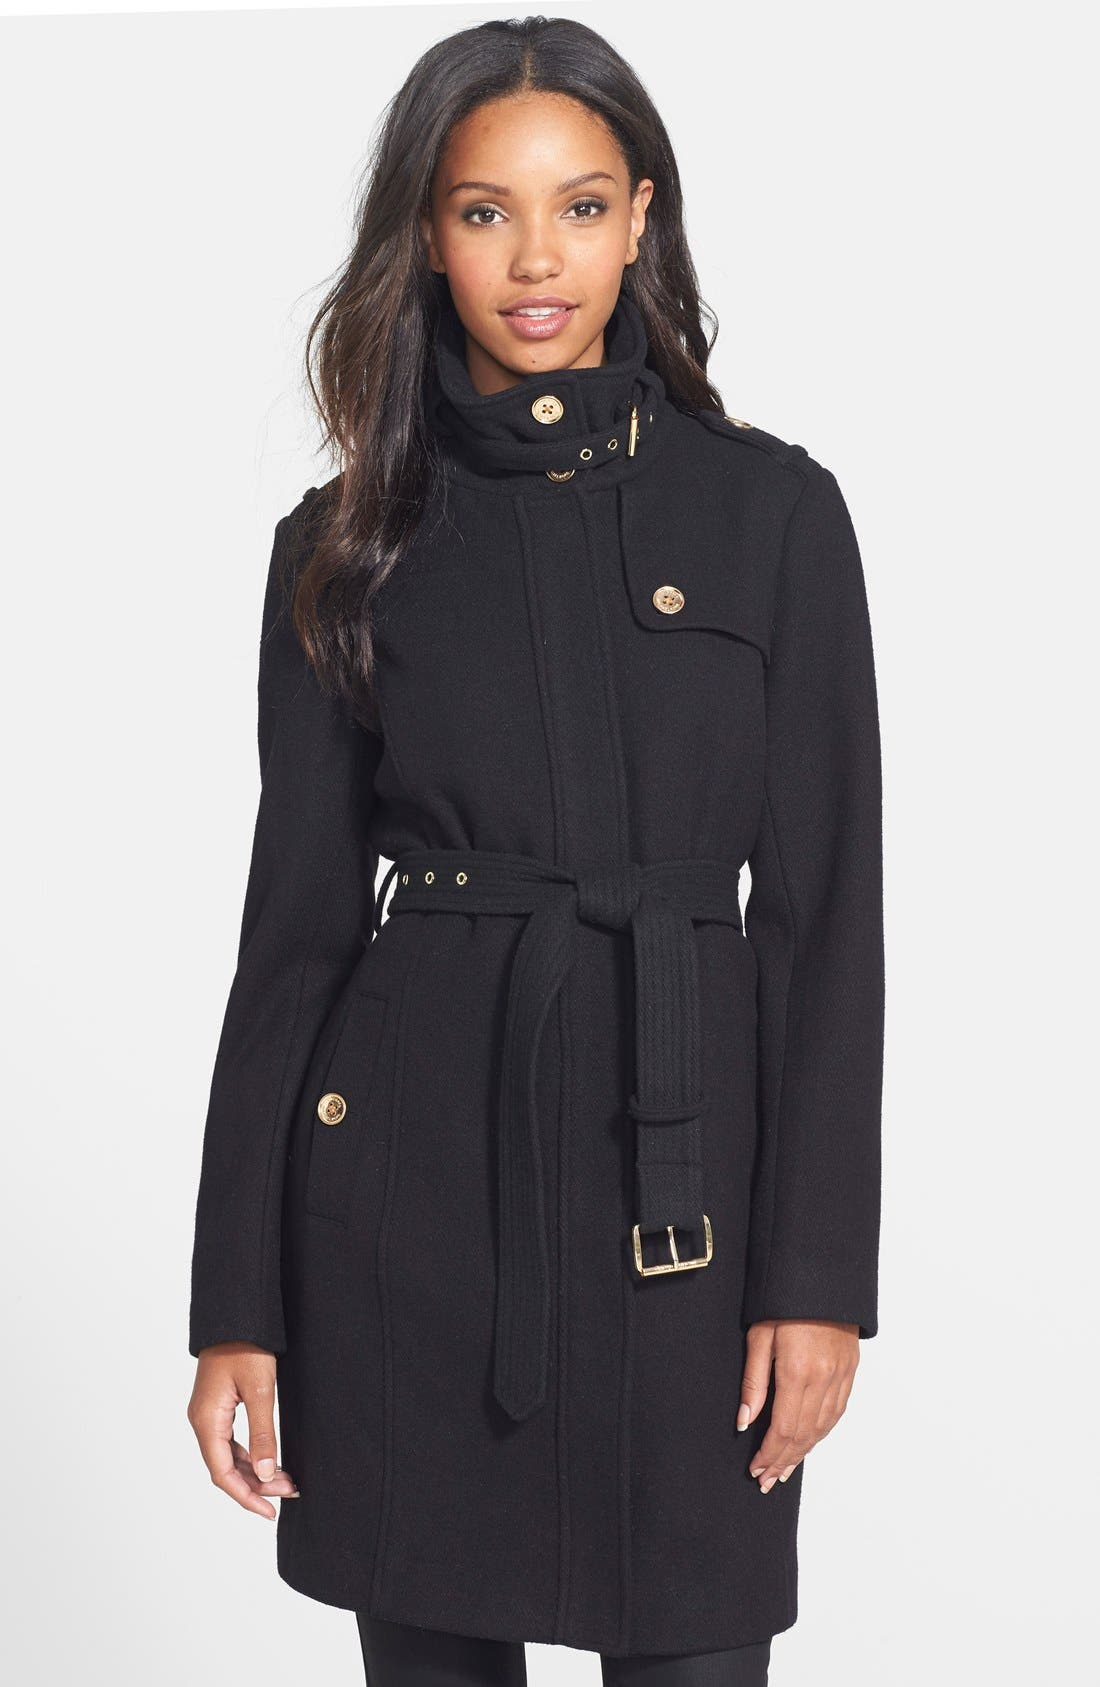 Stand Collar Wool Blend Trench Coat,                         Main,                         color, 001